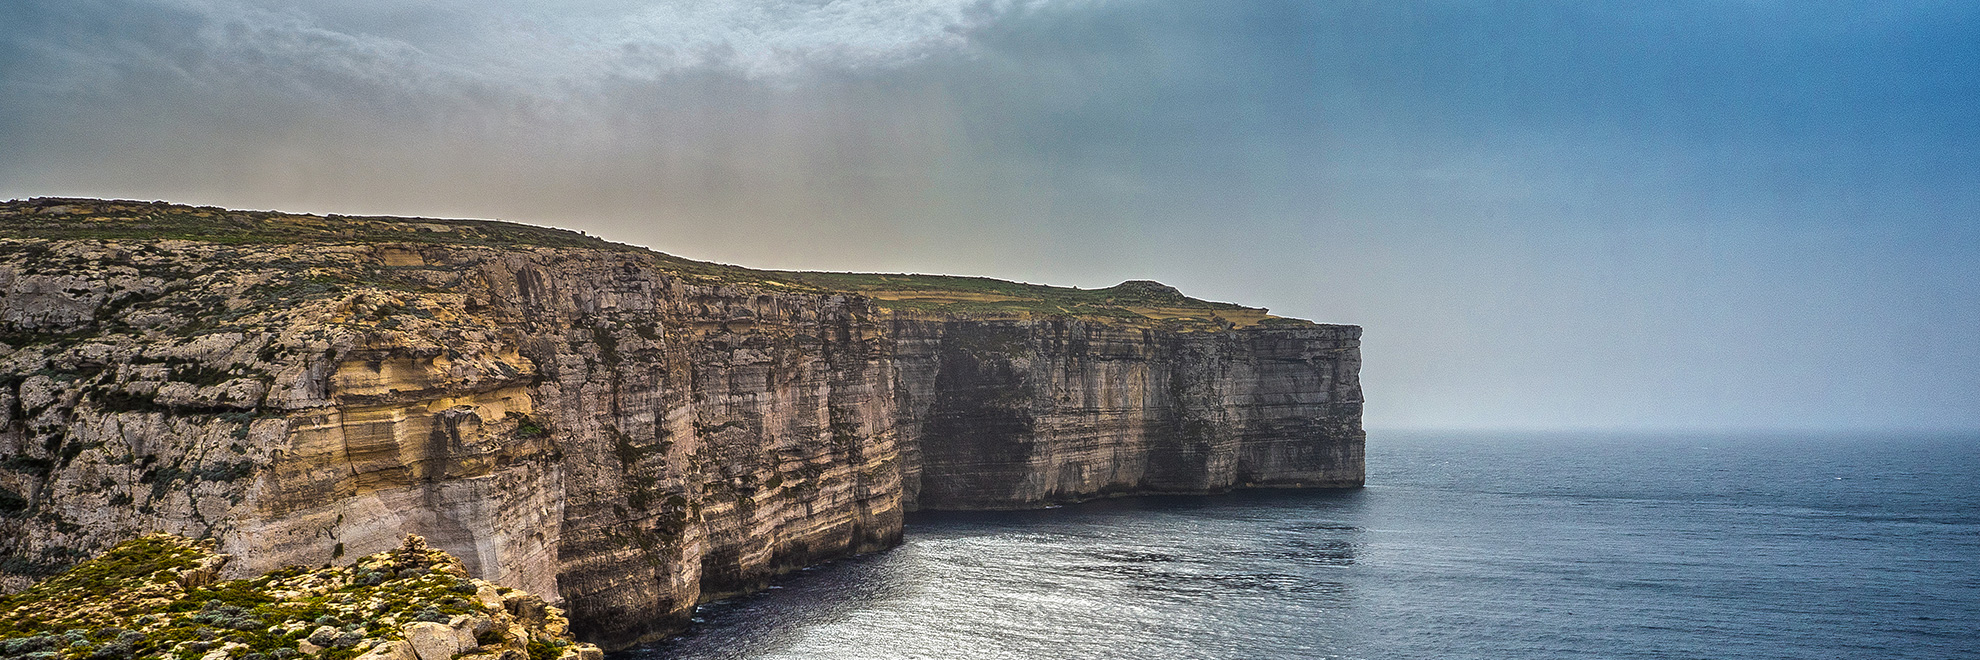 Gozo-Cliffs-Aerial-View-1